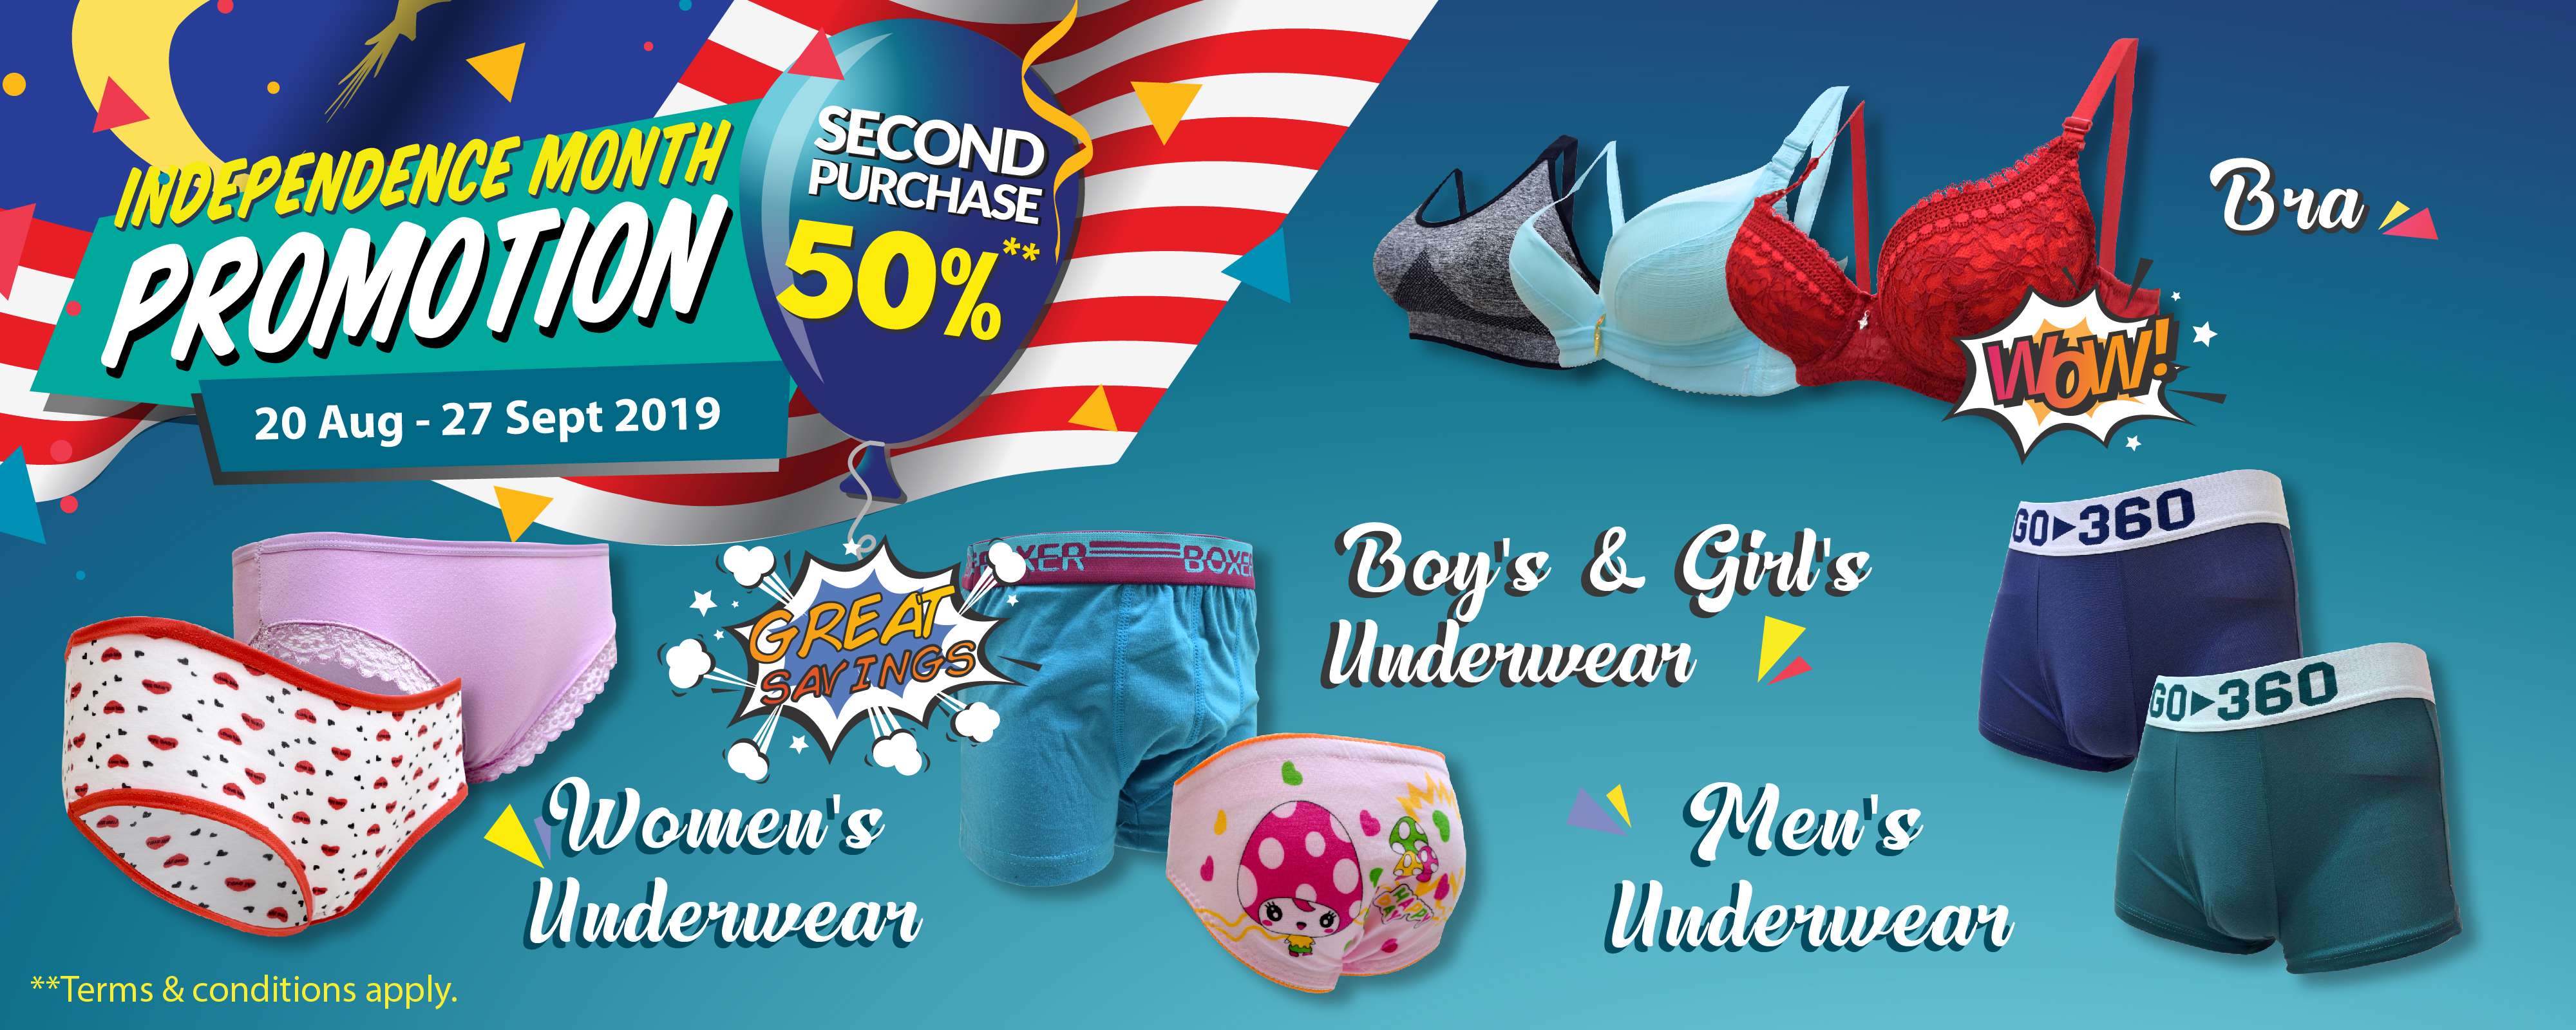 Independence Month Promotion